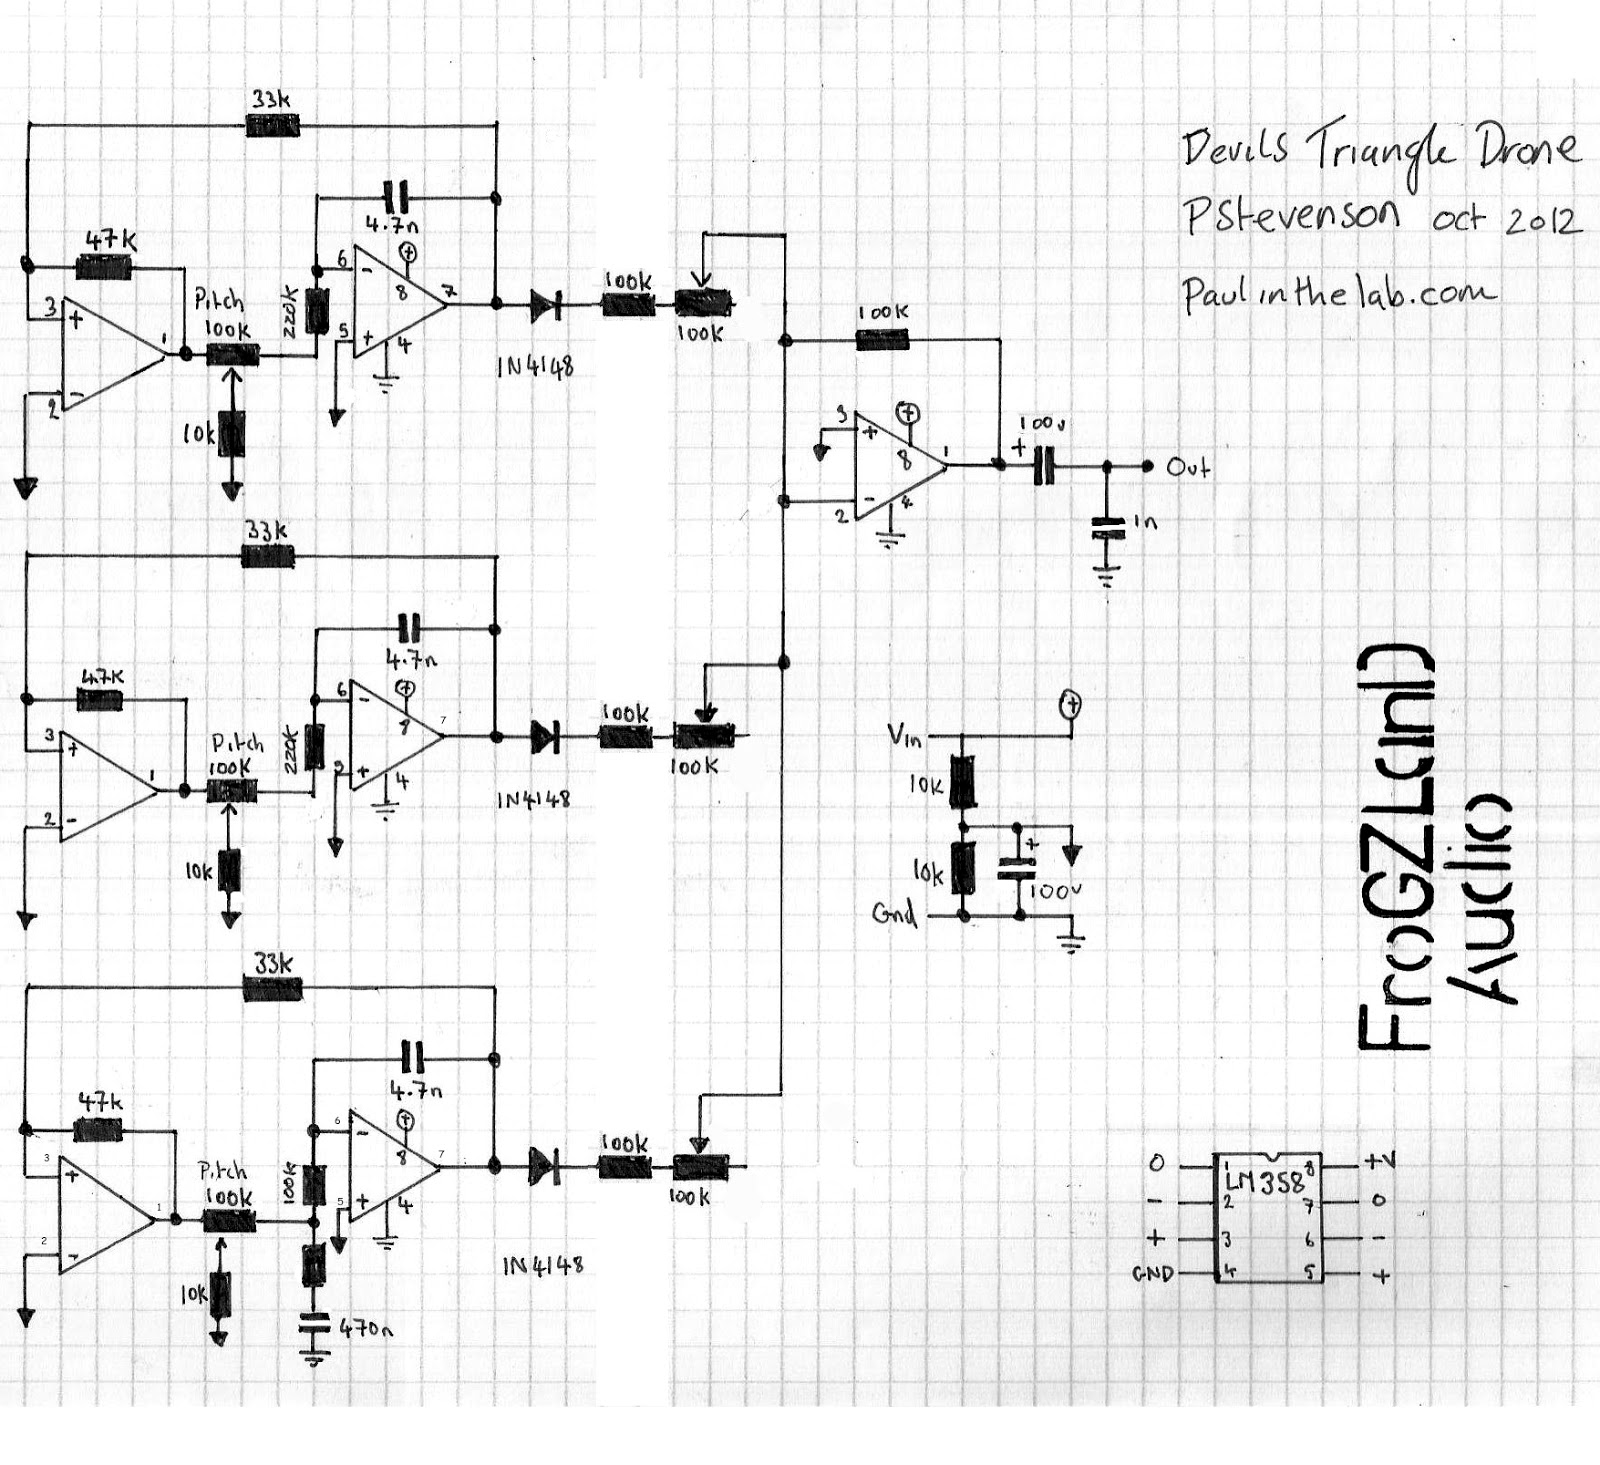 DTD+schematic.bmp paul in the lab devils triangle drone synth stripboard veroboard wiring diagram for drag car at webbmarketing.co